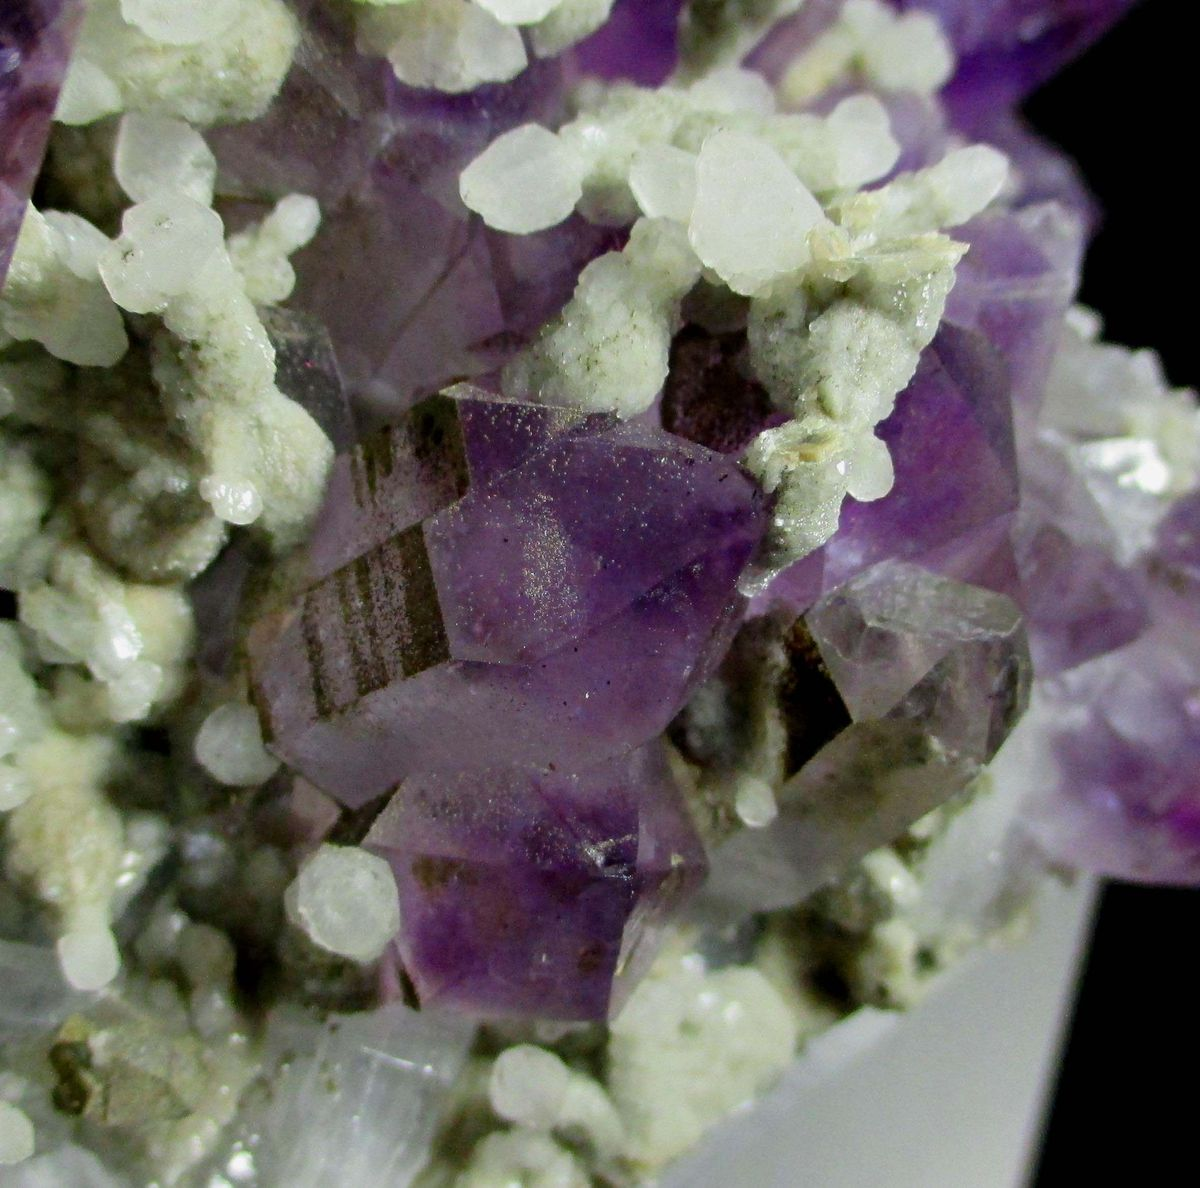 Calcite Var Sceptre Calcite On Amethyst